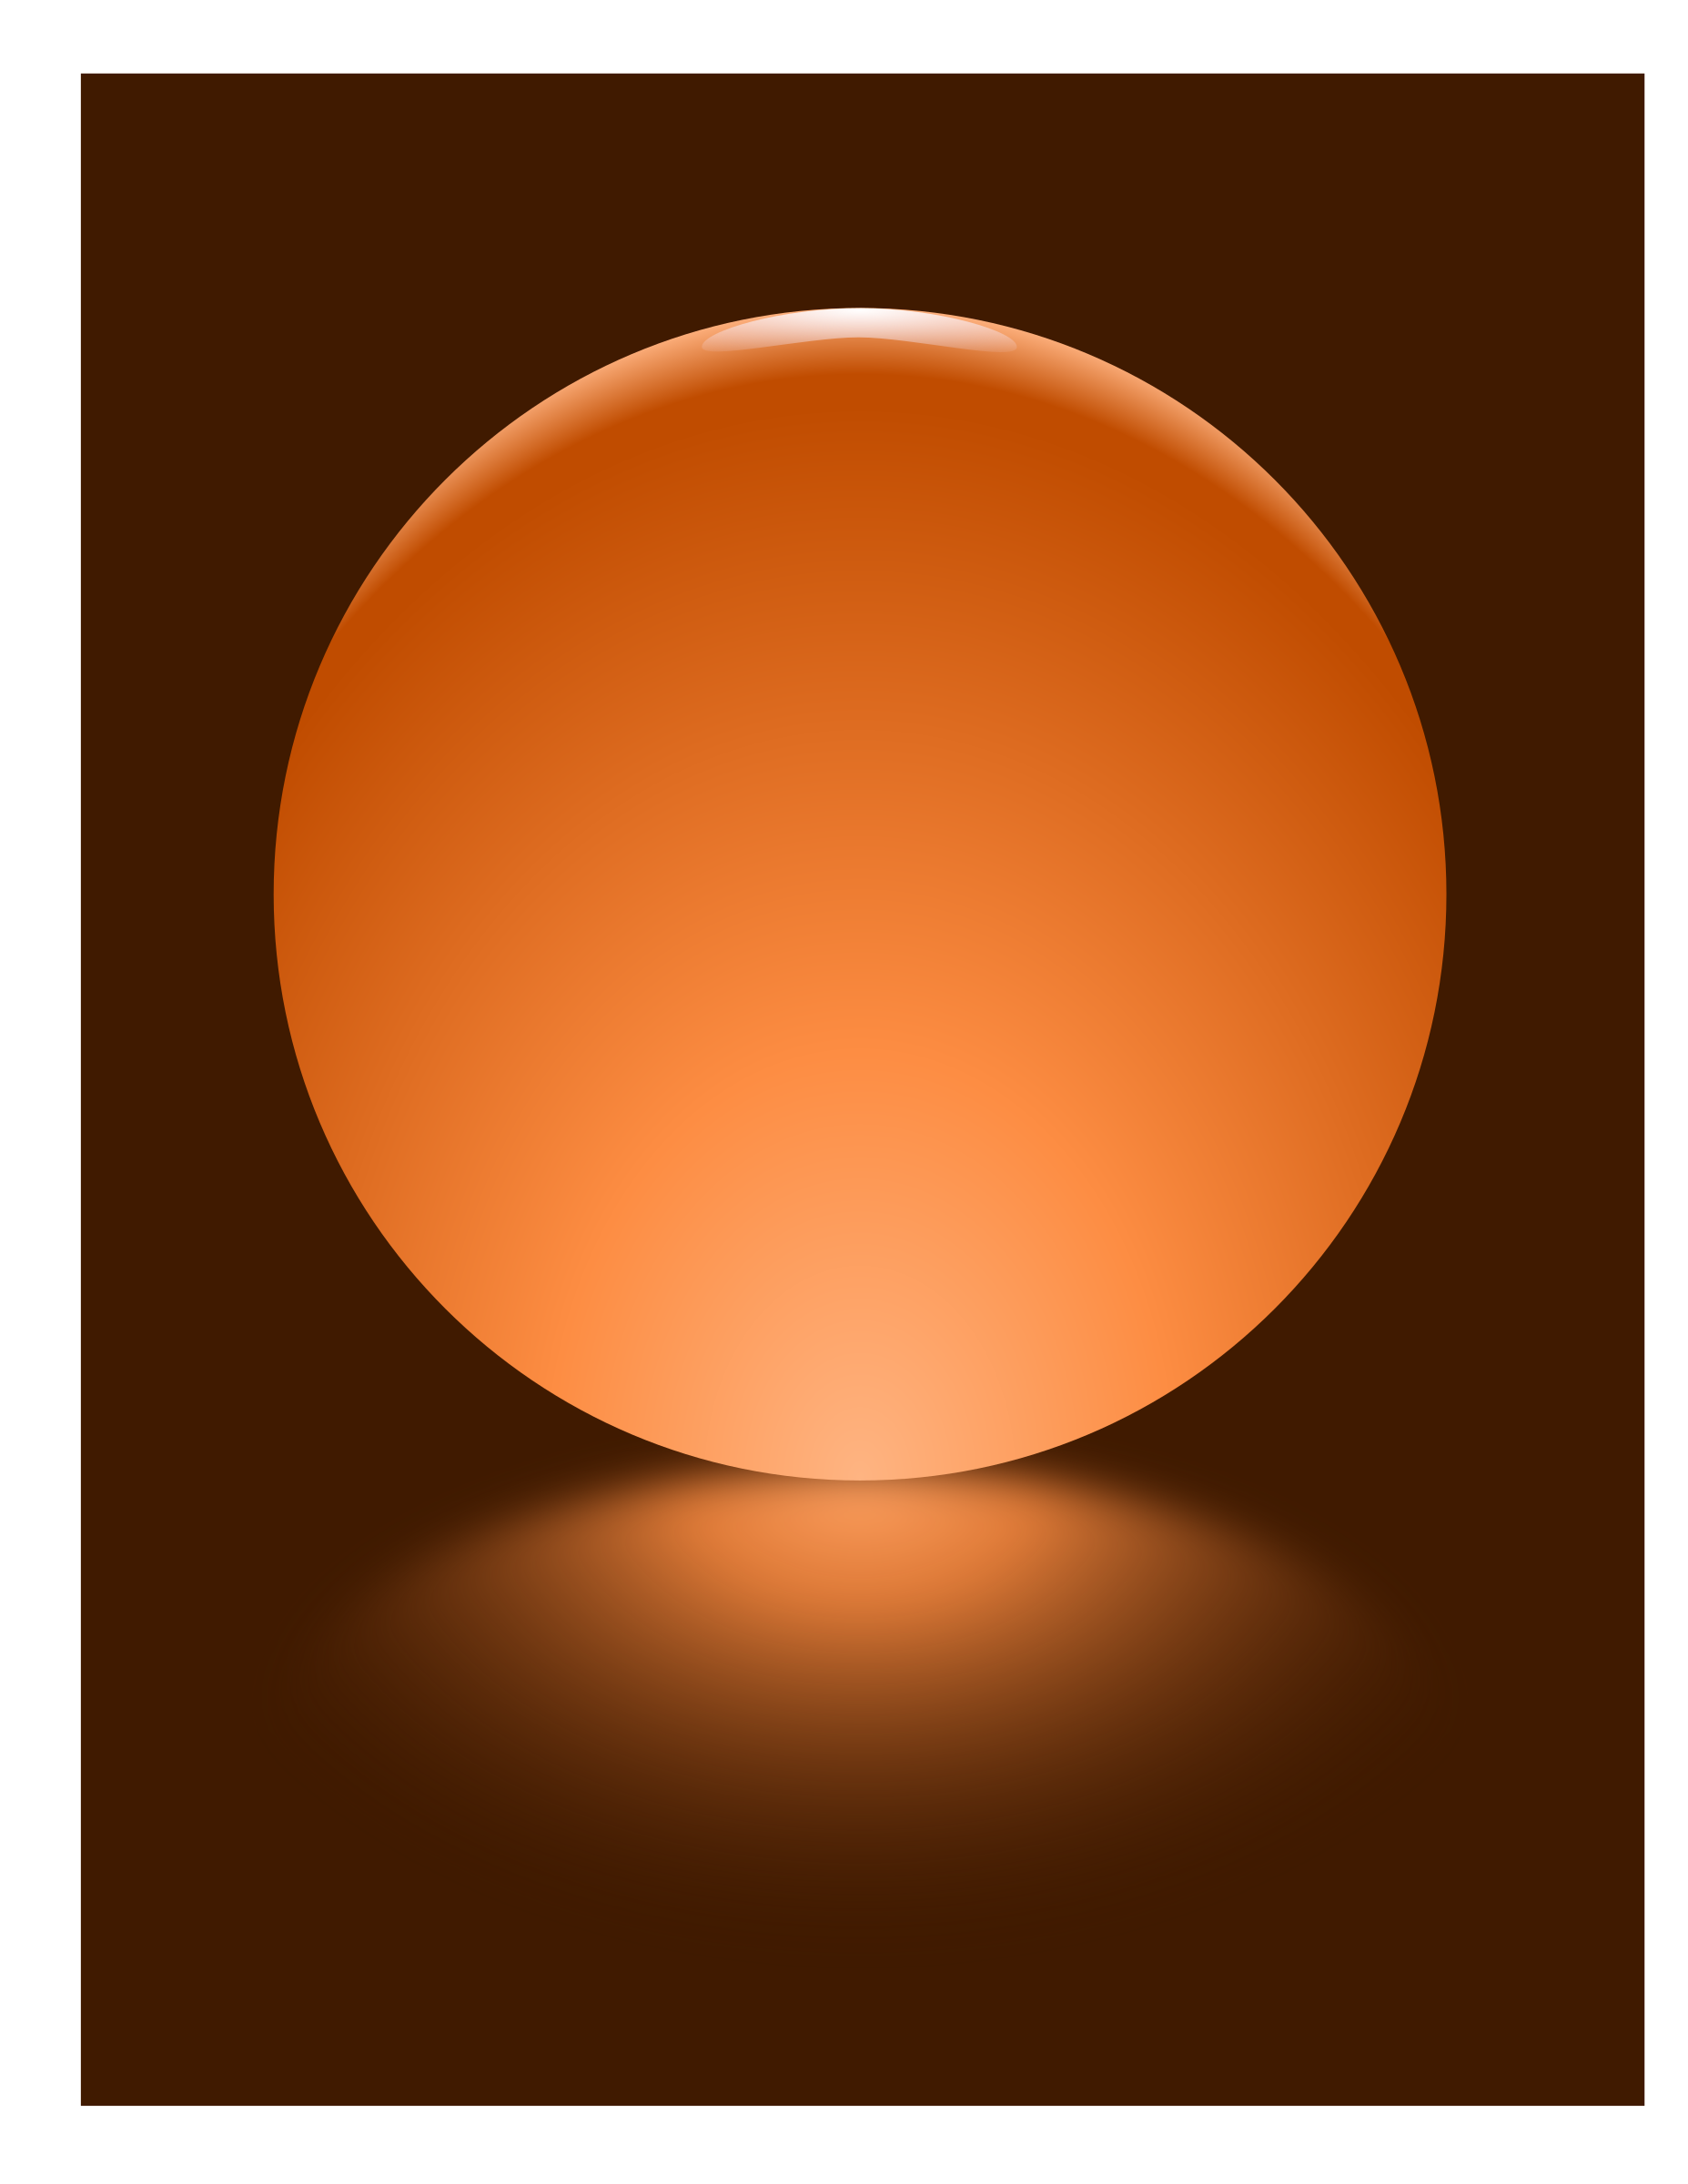 Orange Sphere Blurred Reflection by djpaul